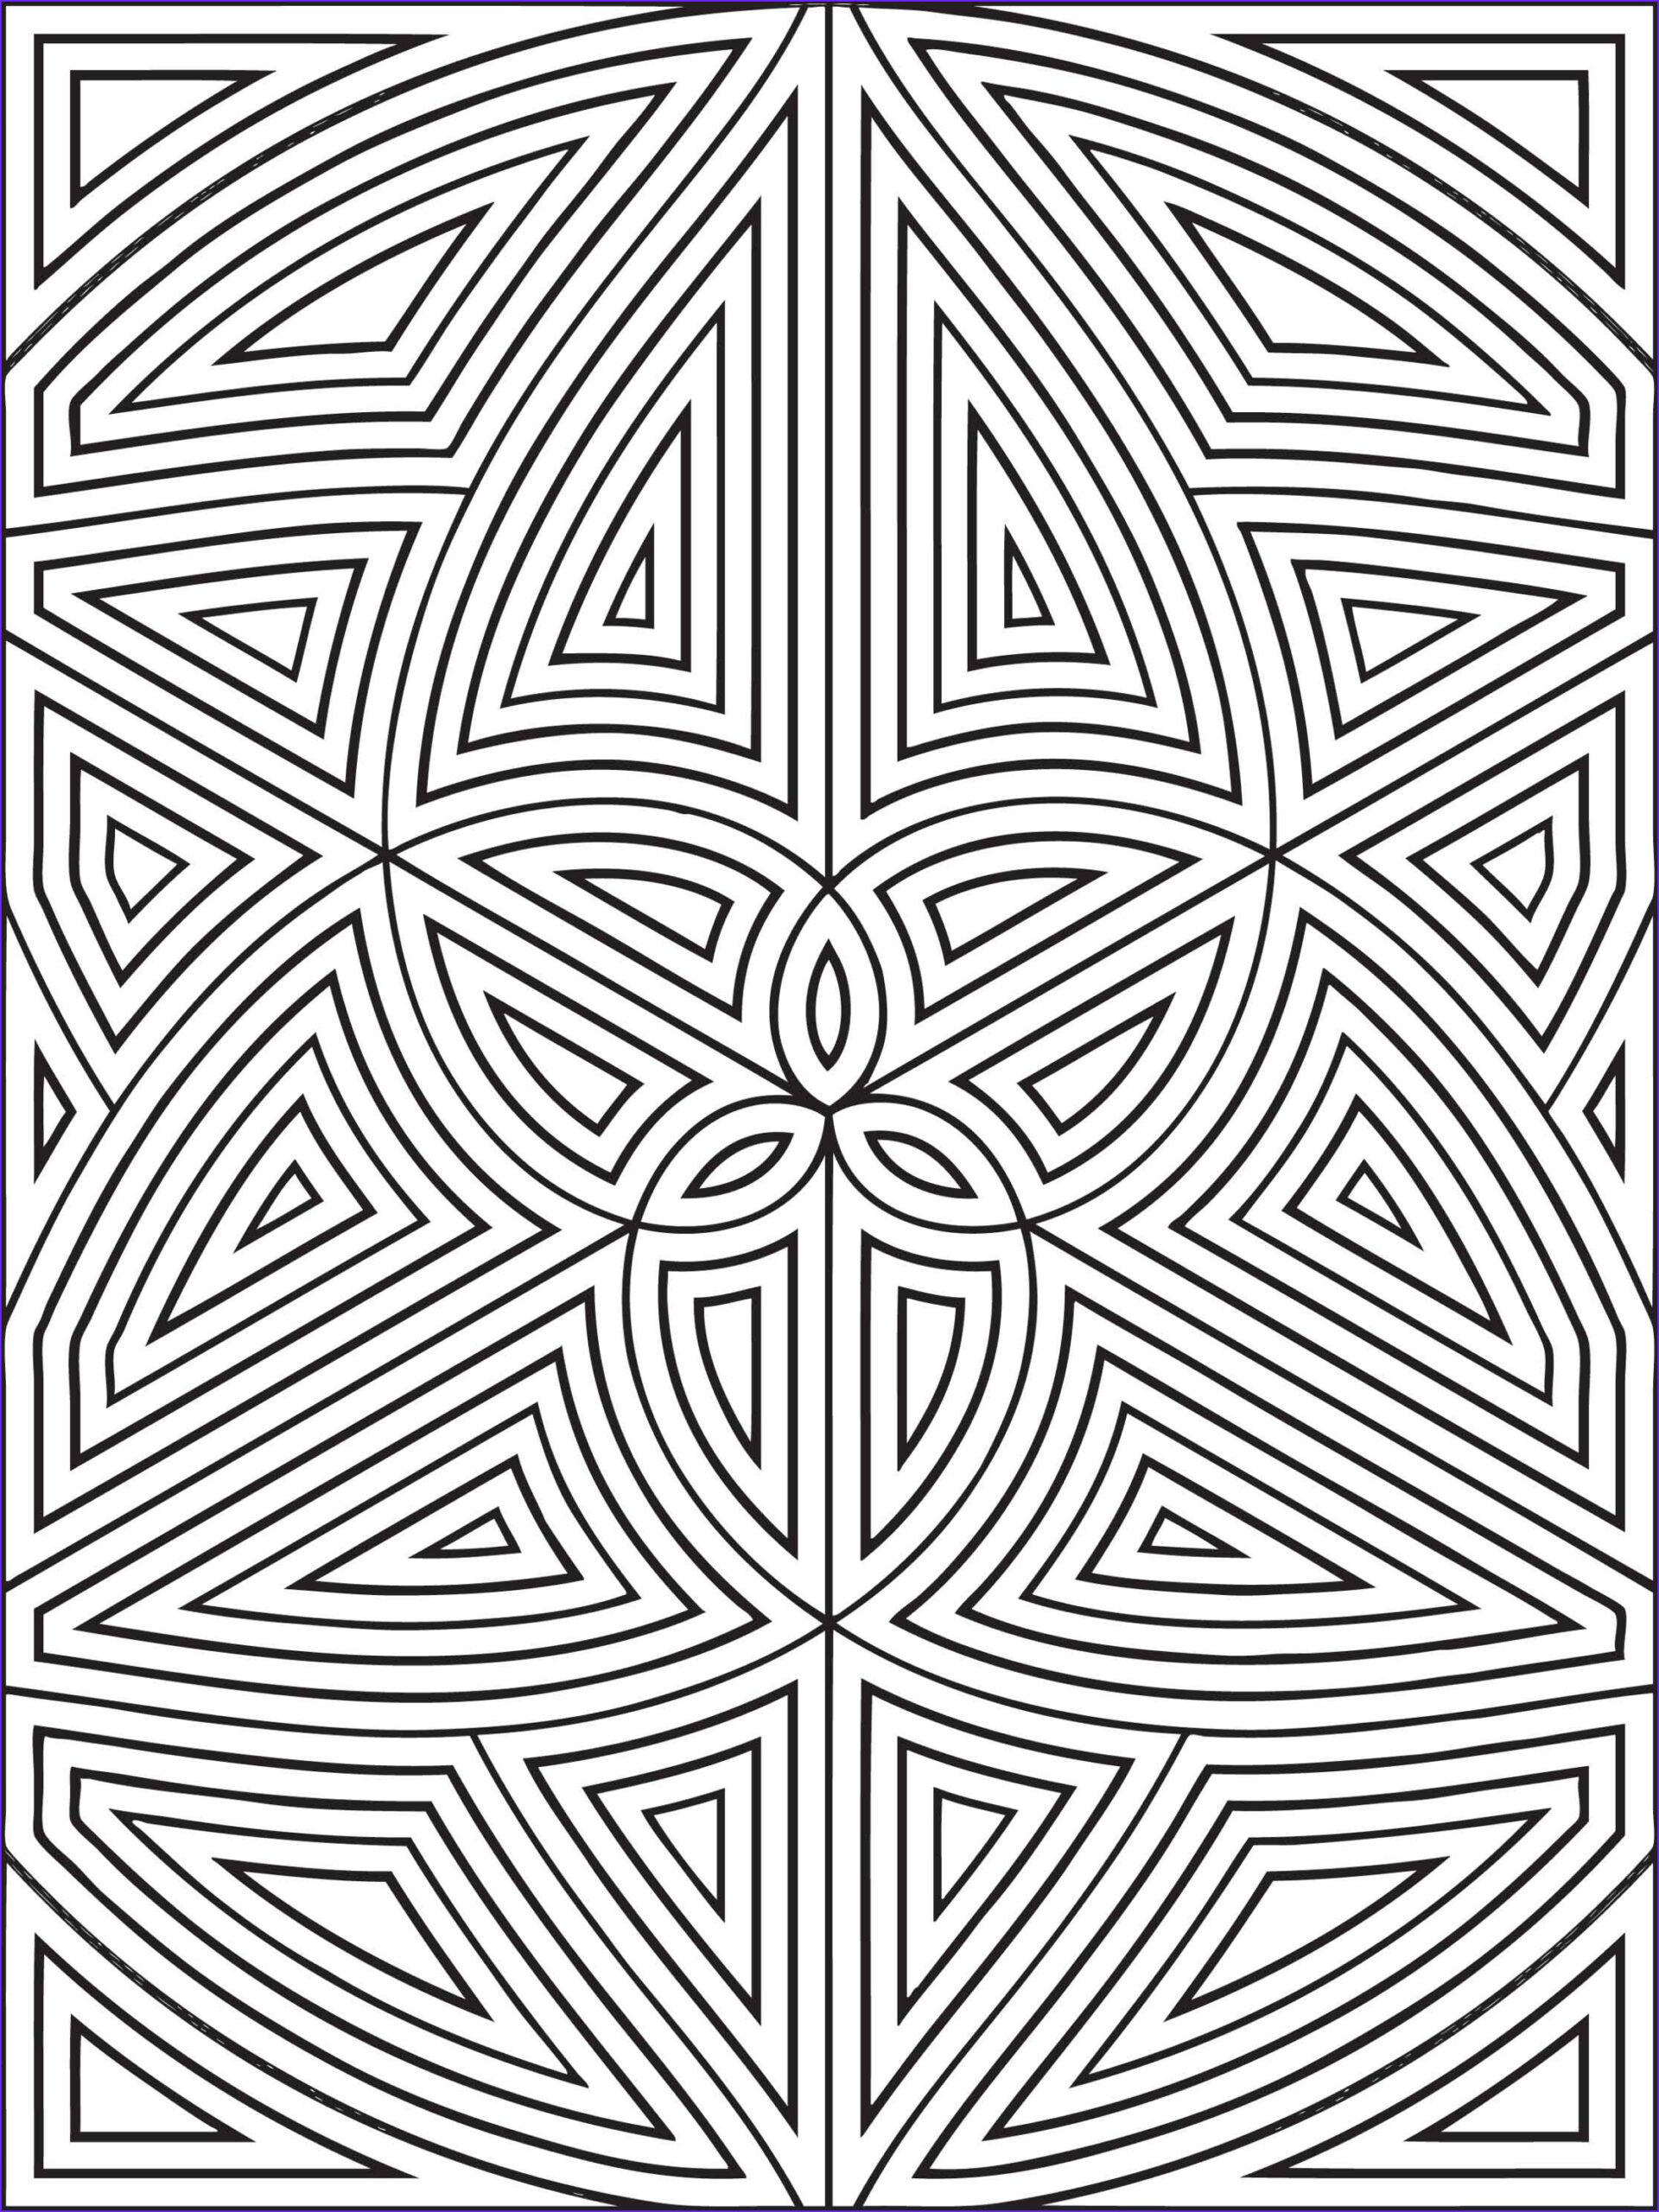 Coloring Pages Designs Beautiful Photos Free Printable Geometric Coloring Pages for Kids